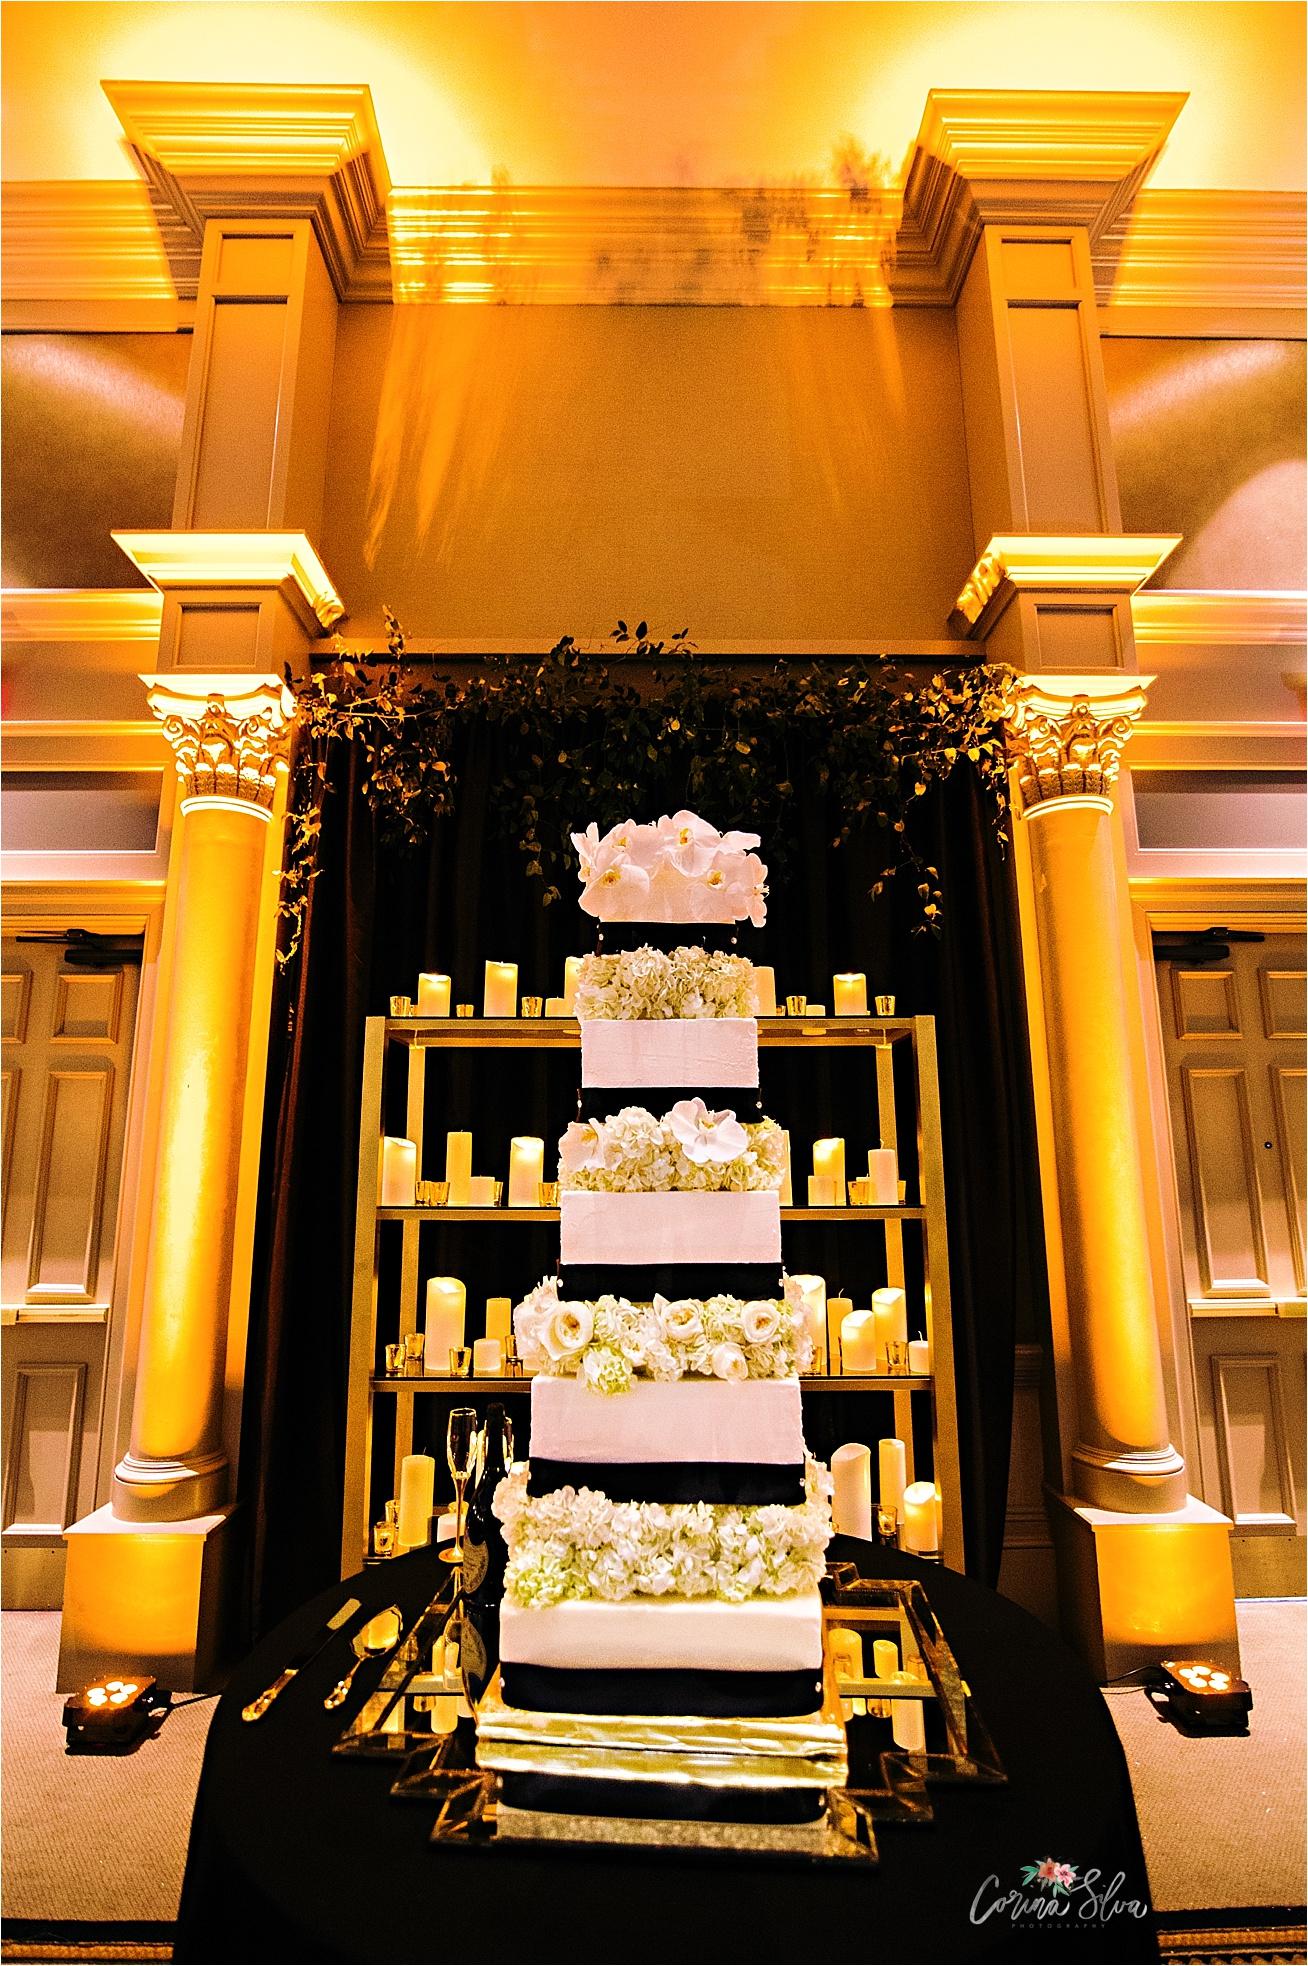 RSG-Event-and-Designs-luxury-wedding-decor-photos, Corina-Silva-Studios_0014.jpg